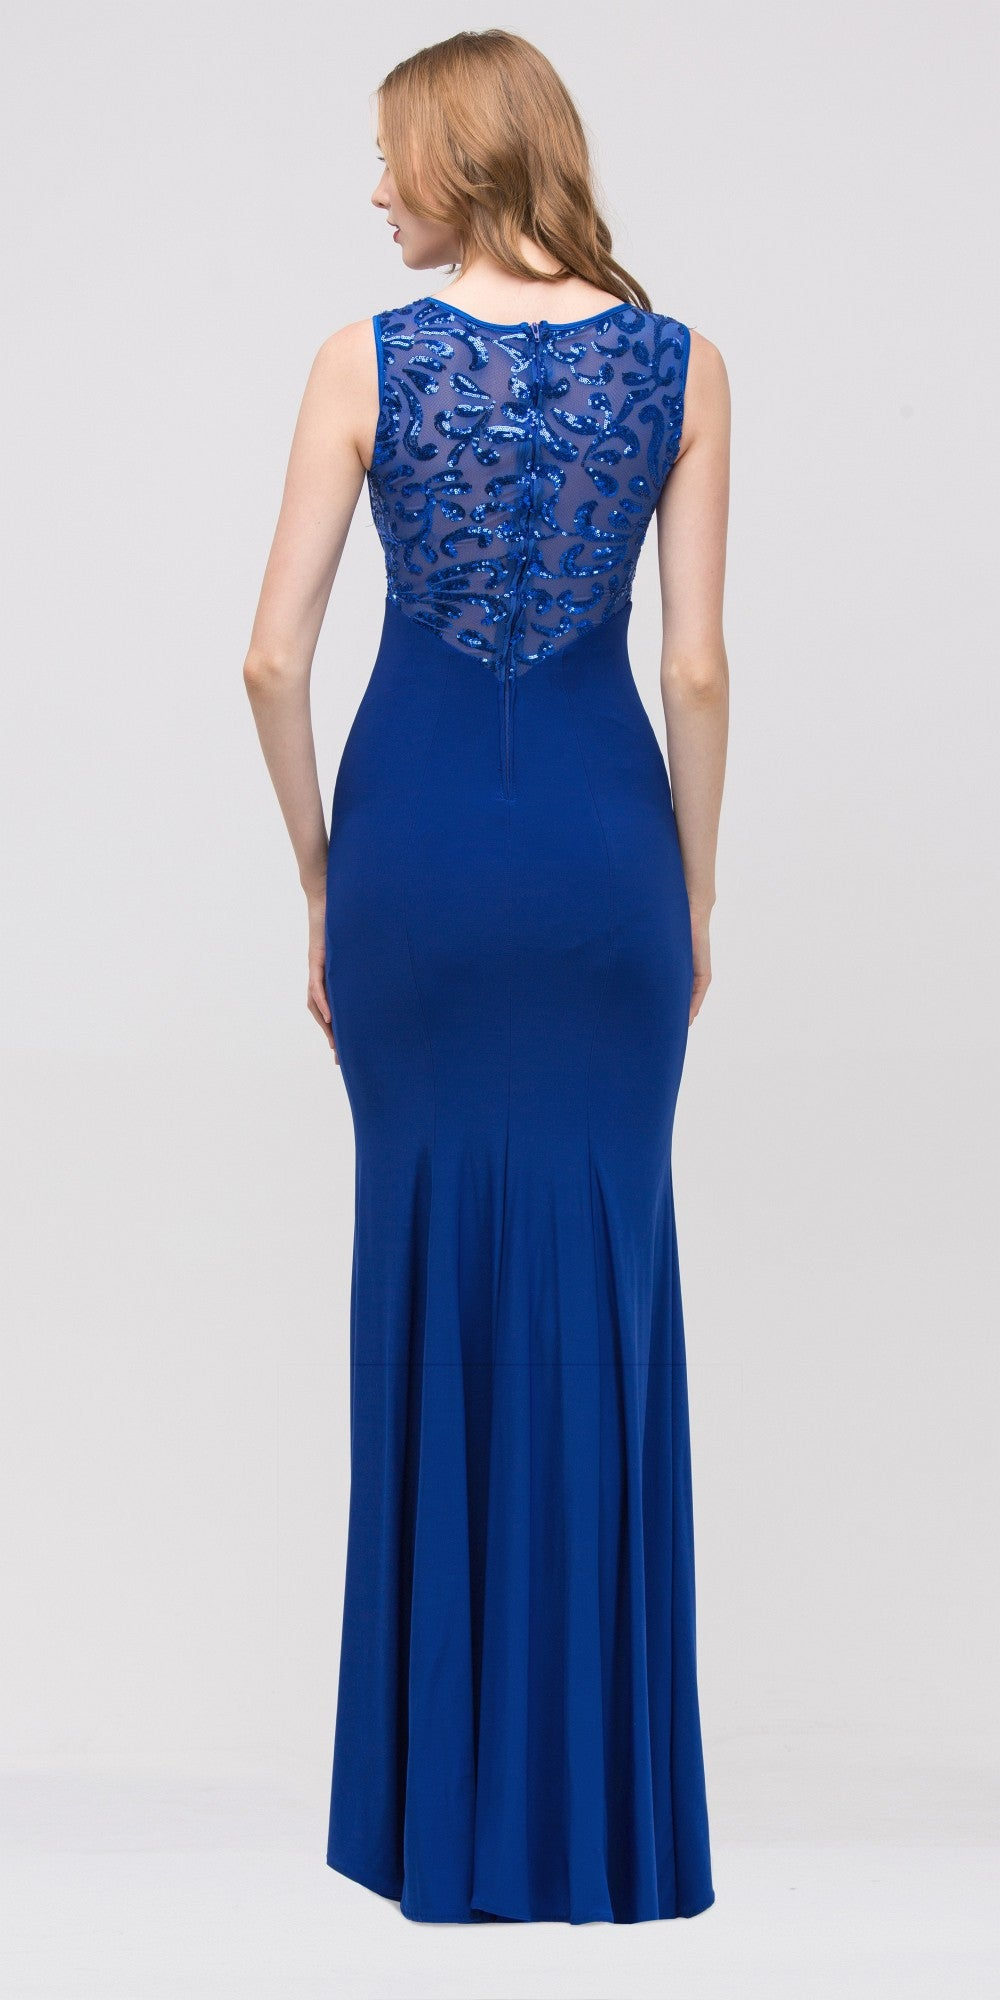 Royal Blue Jersey Sheer Cut-Out Round Neck Sleeveless Prom Dress Back